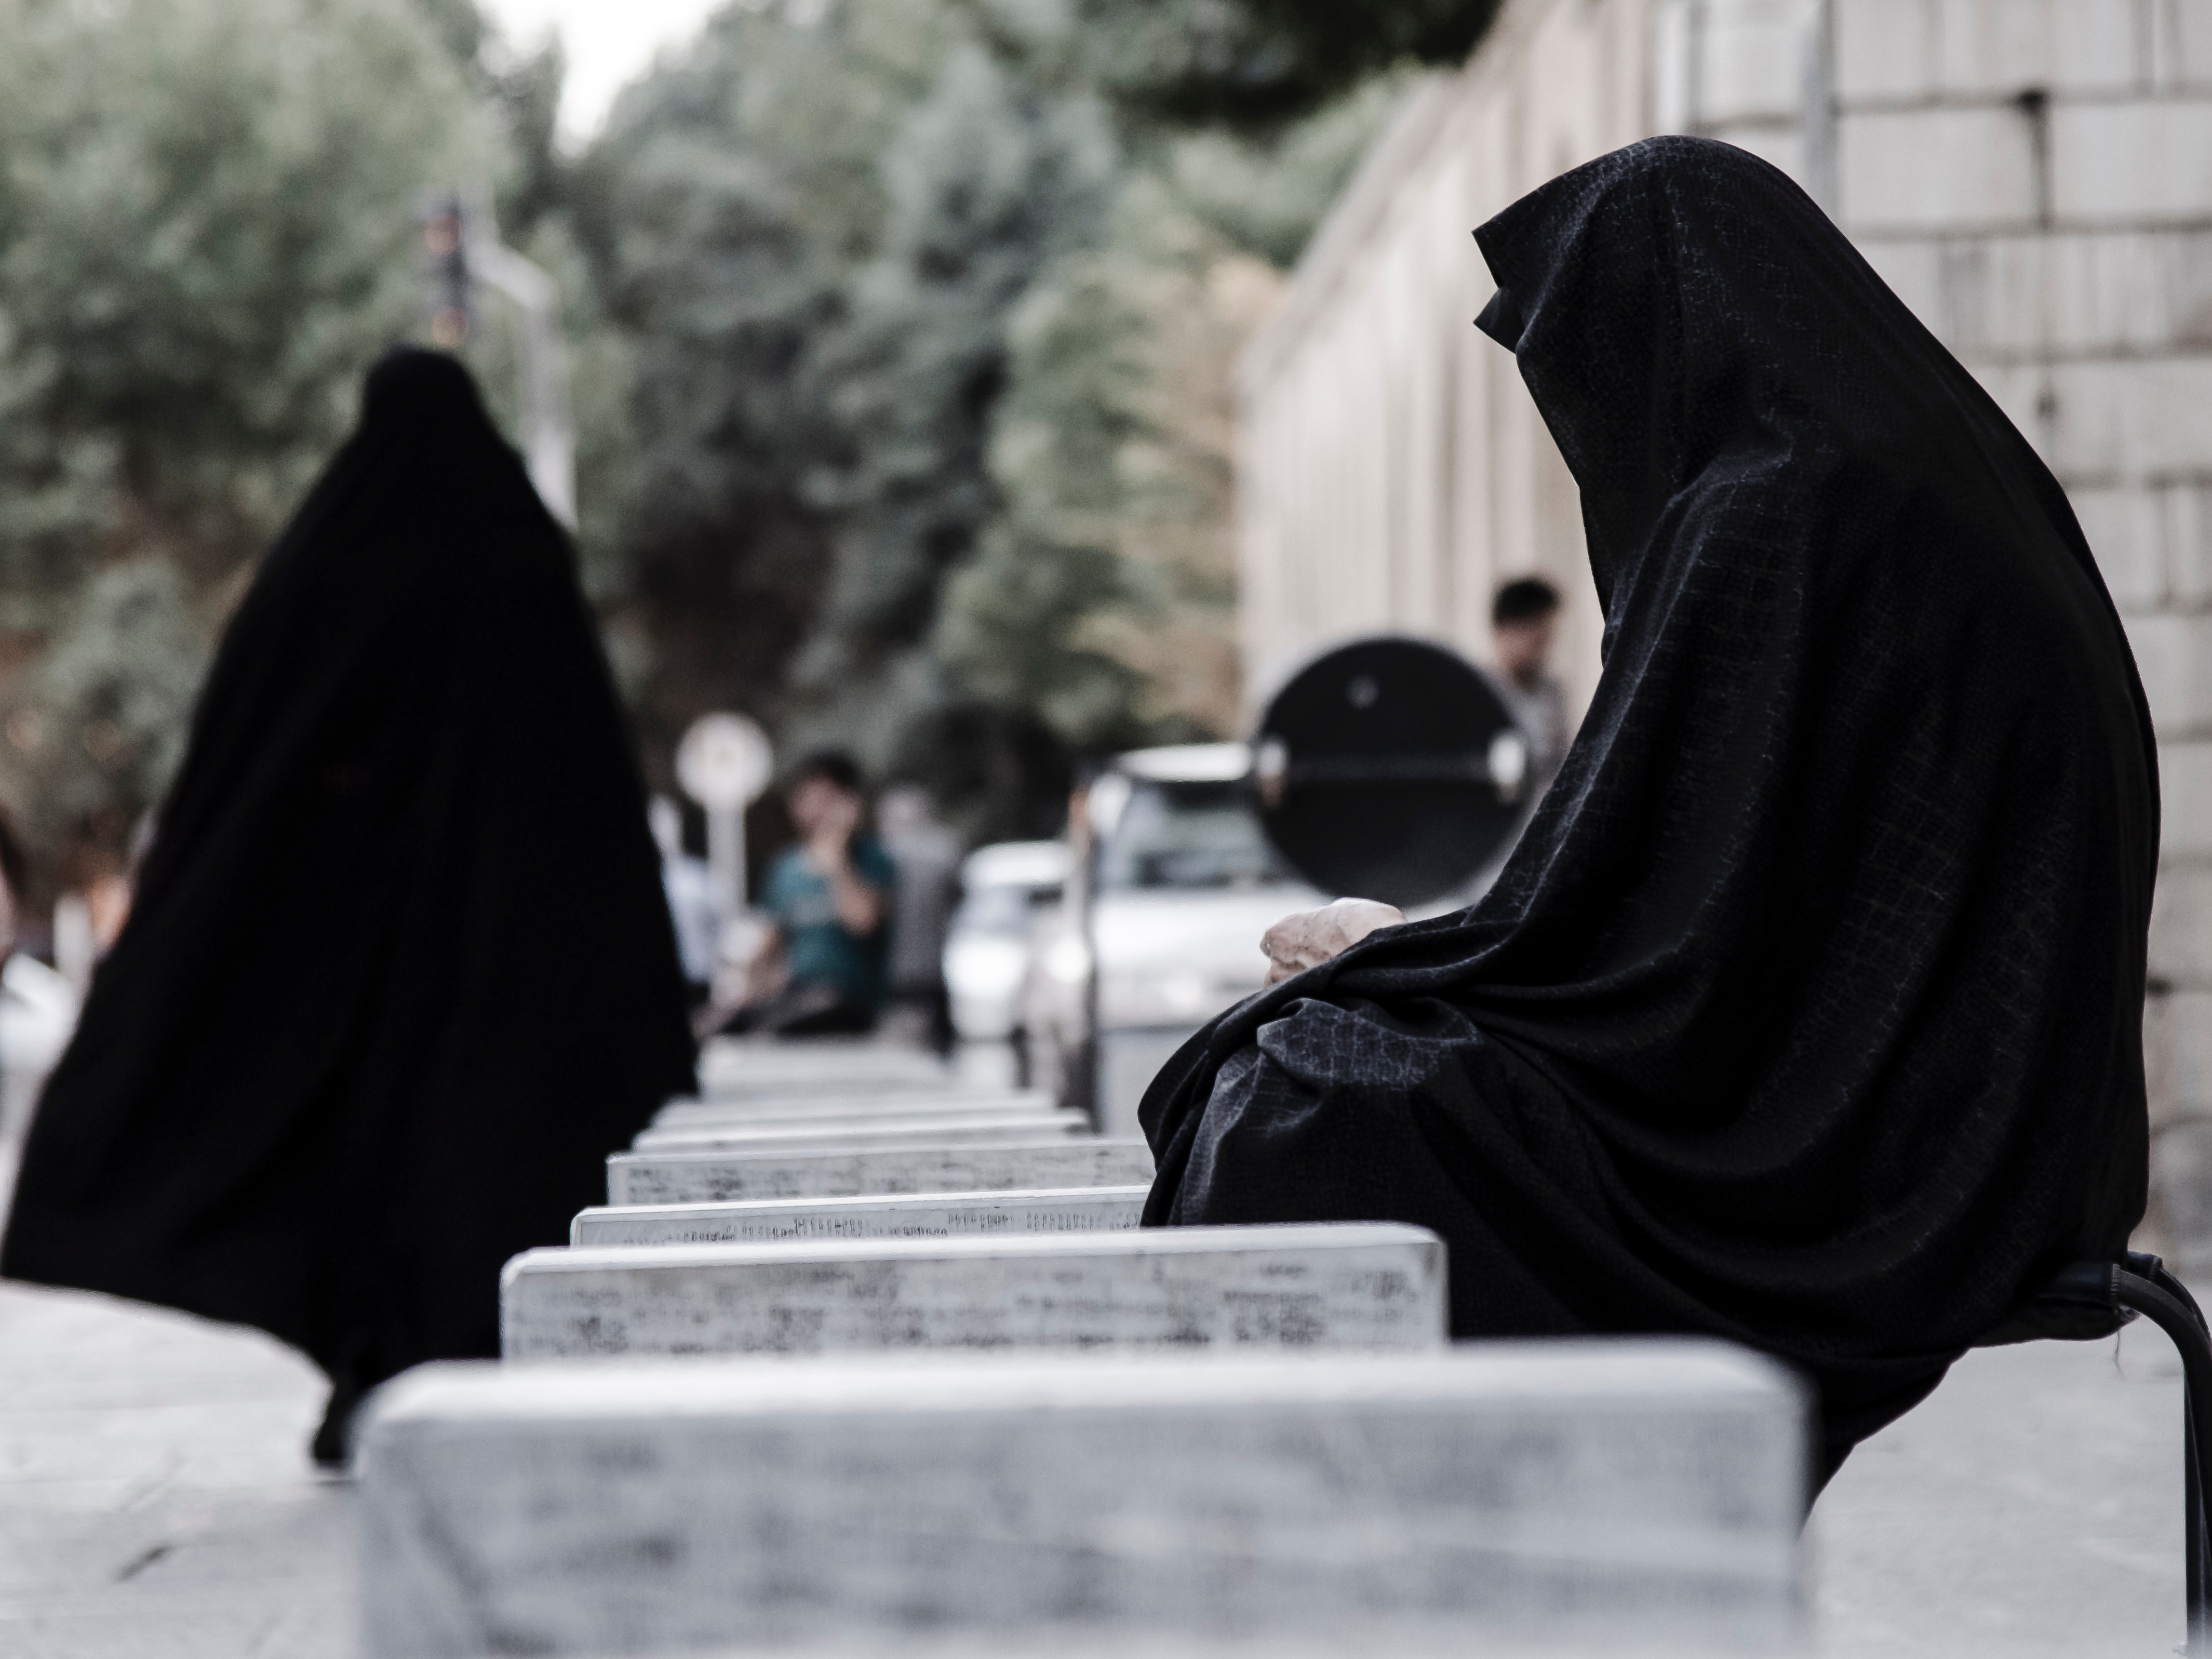 Christianity and atheism growing in Iran